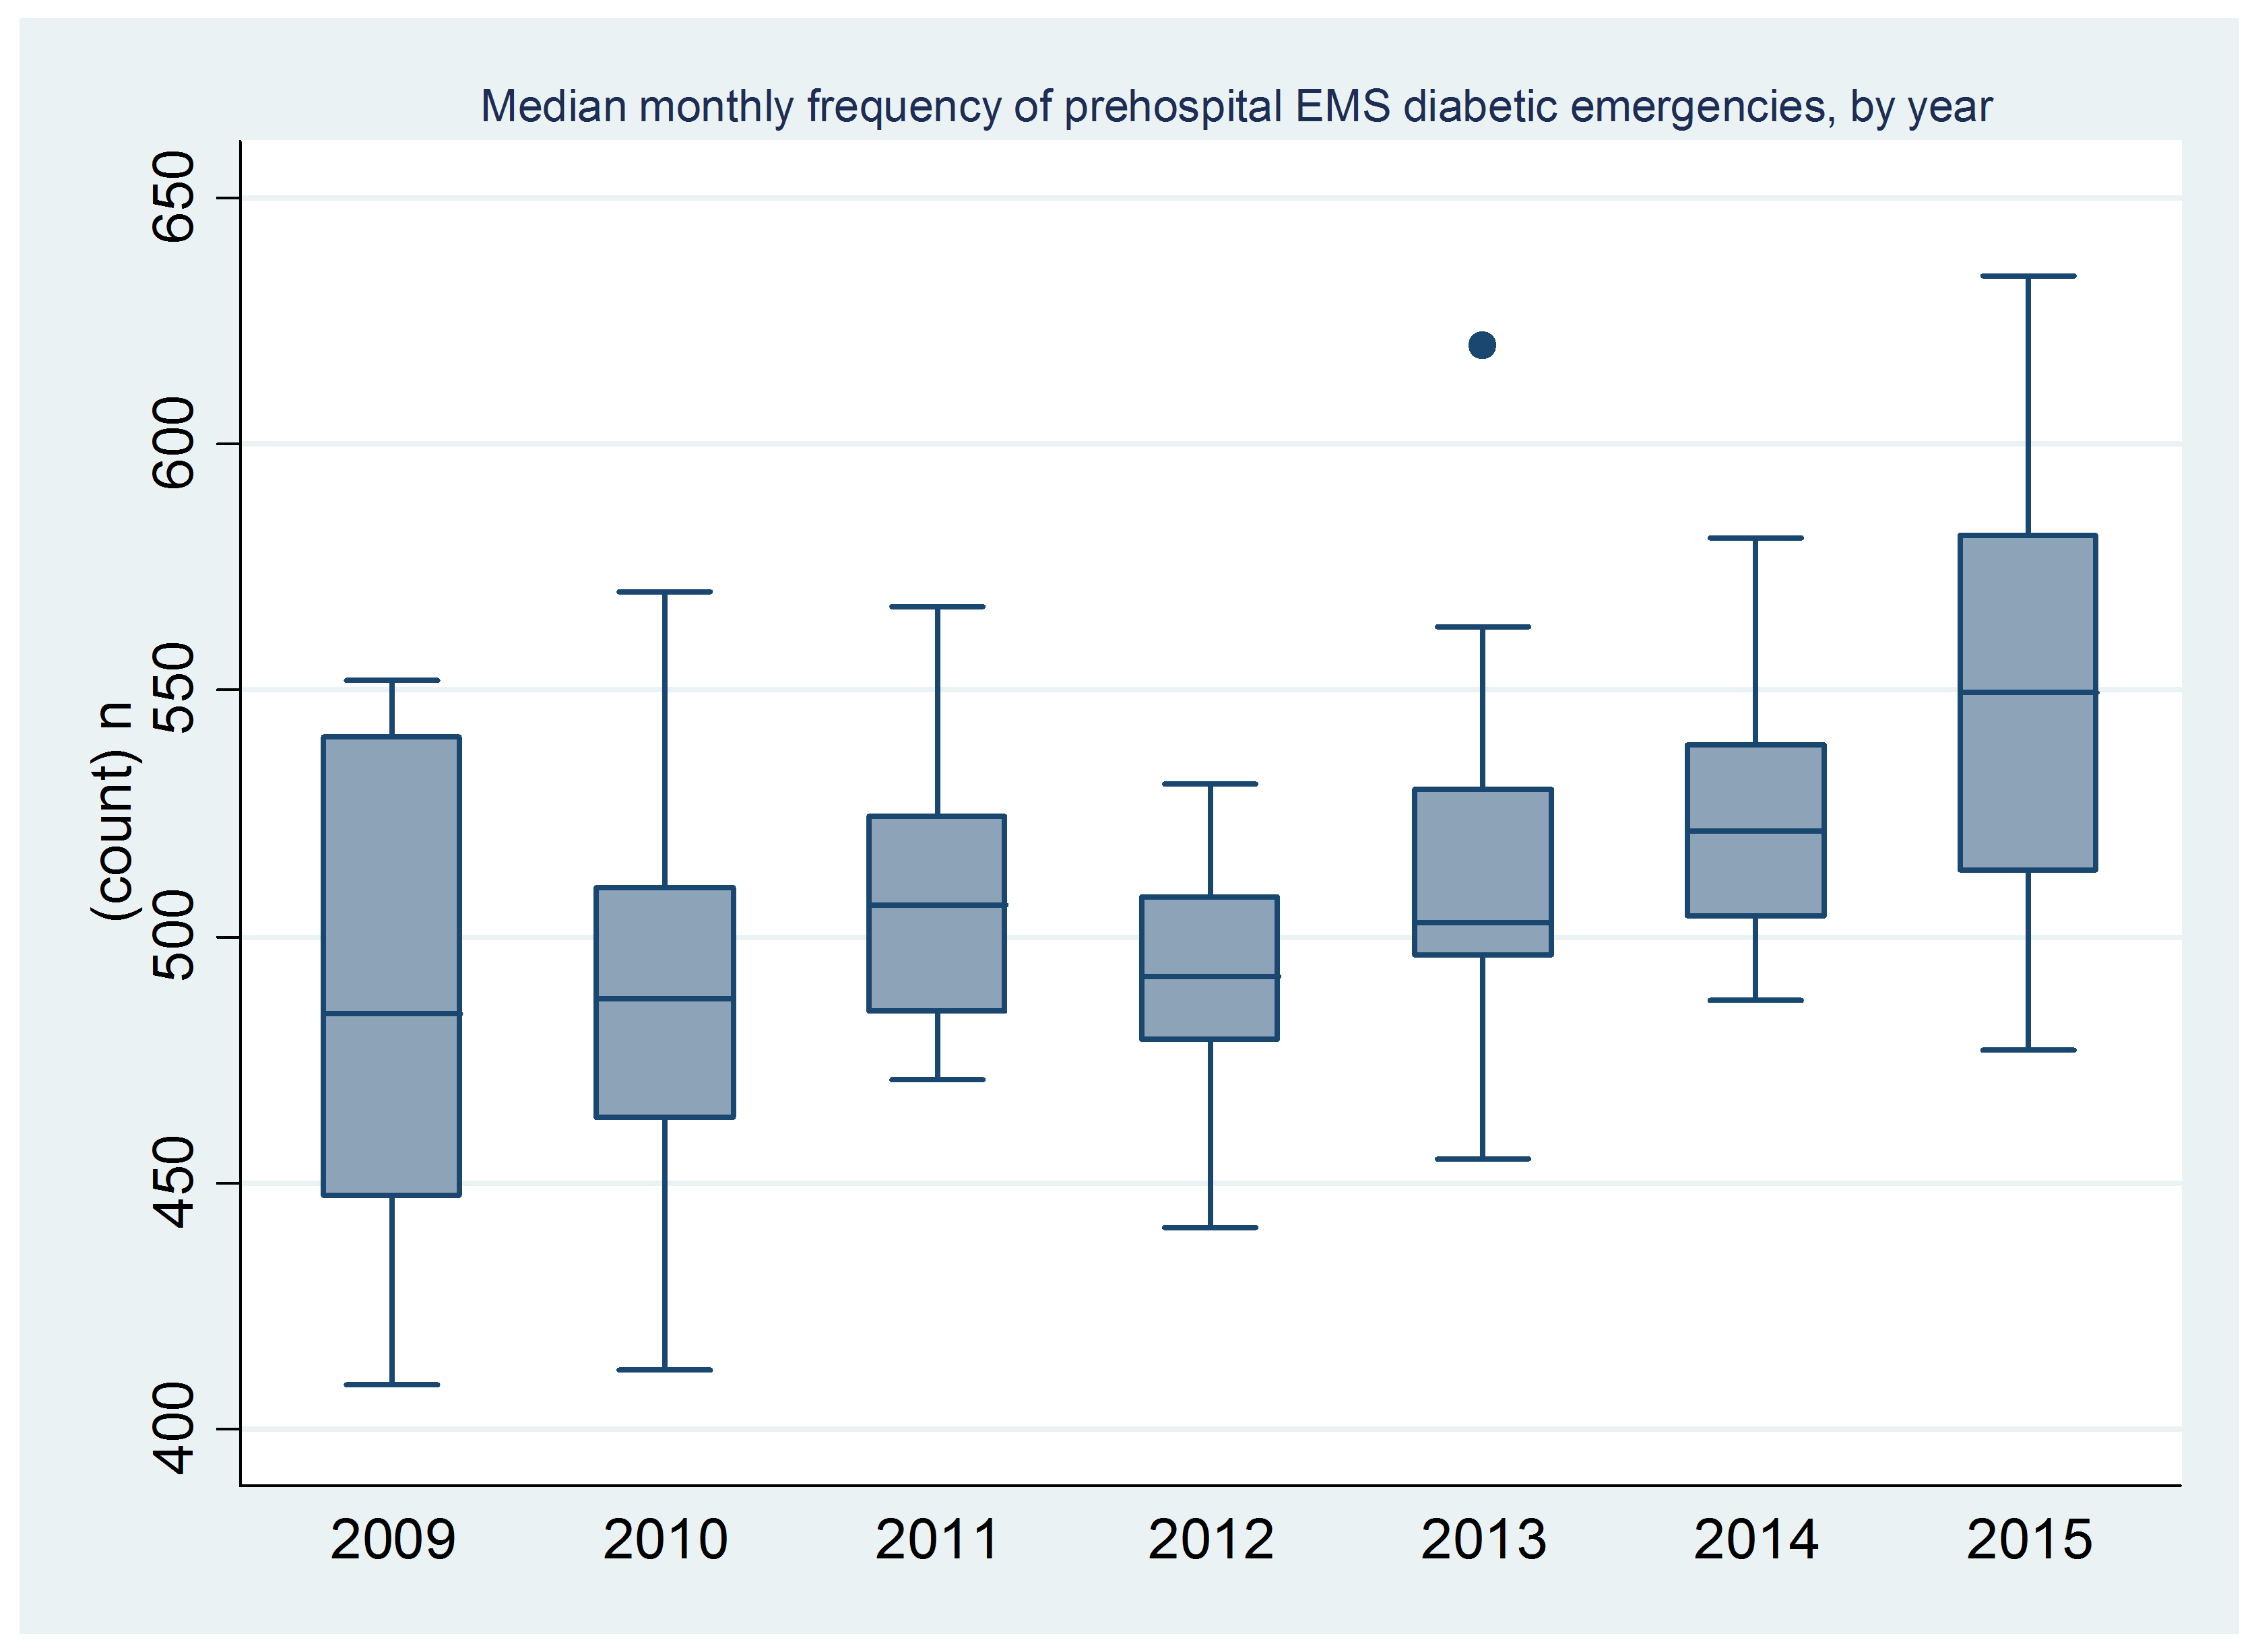 574bc56ac0edf-Monthly+frequency+of+preshospital+EMS+diabetic+emergencies,+by+year.png